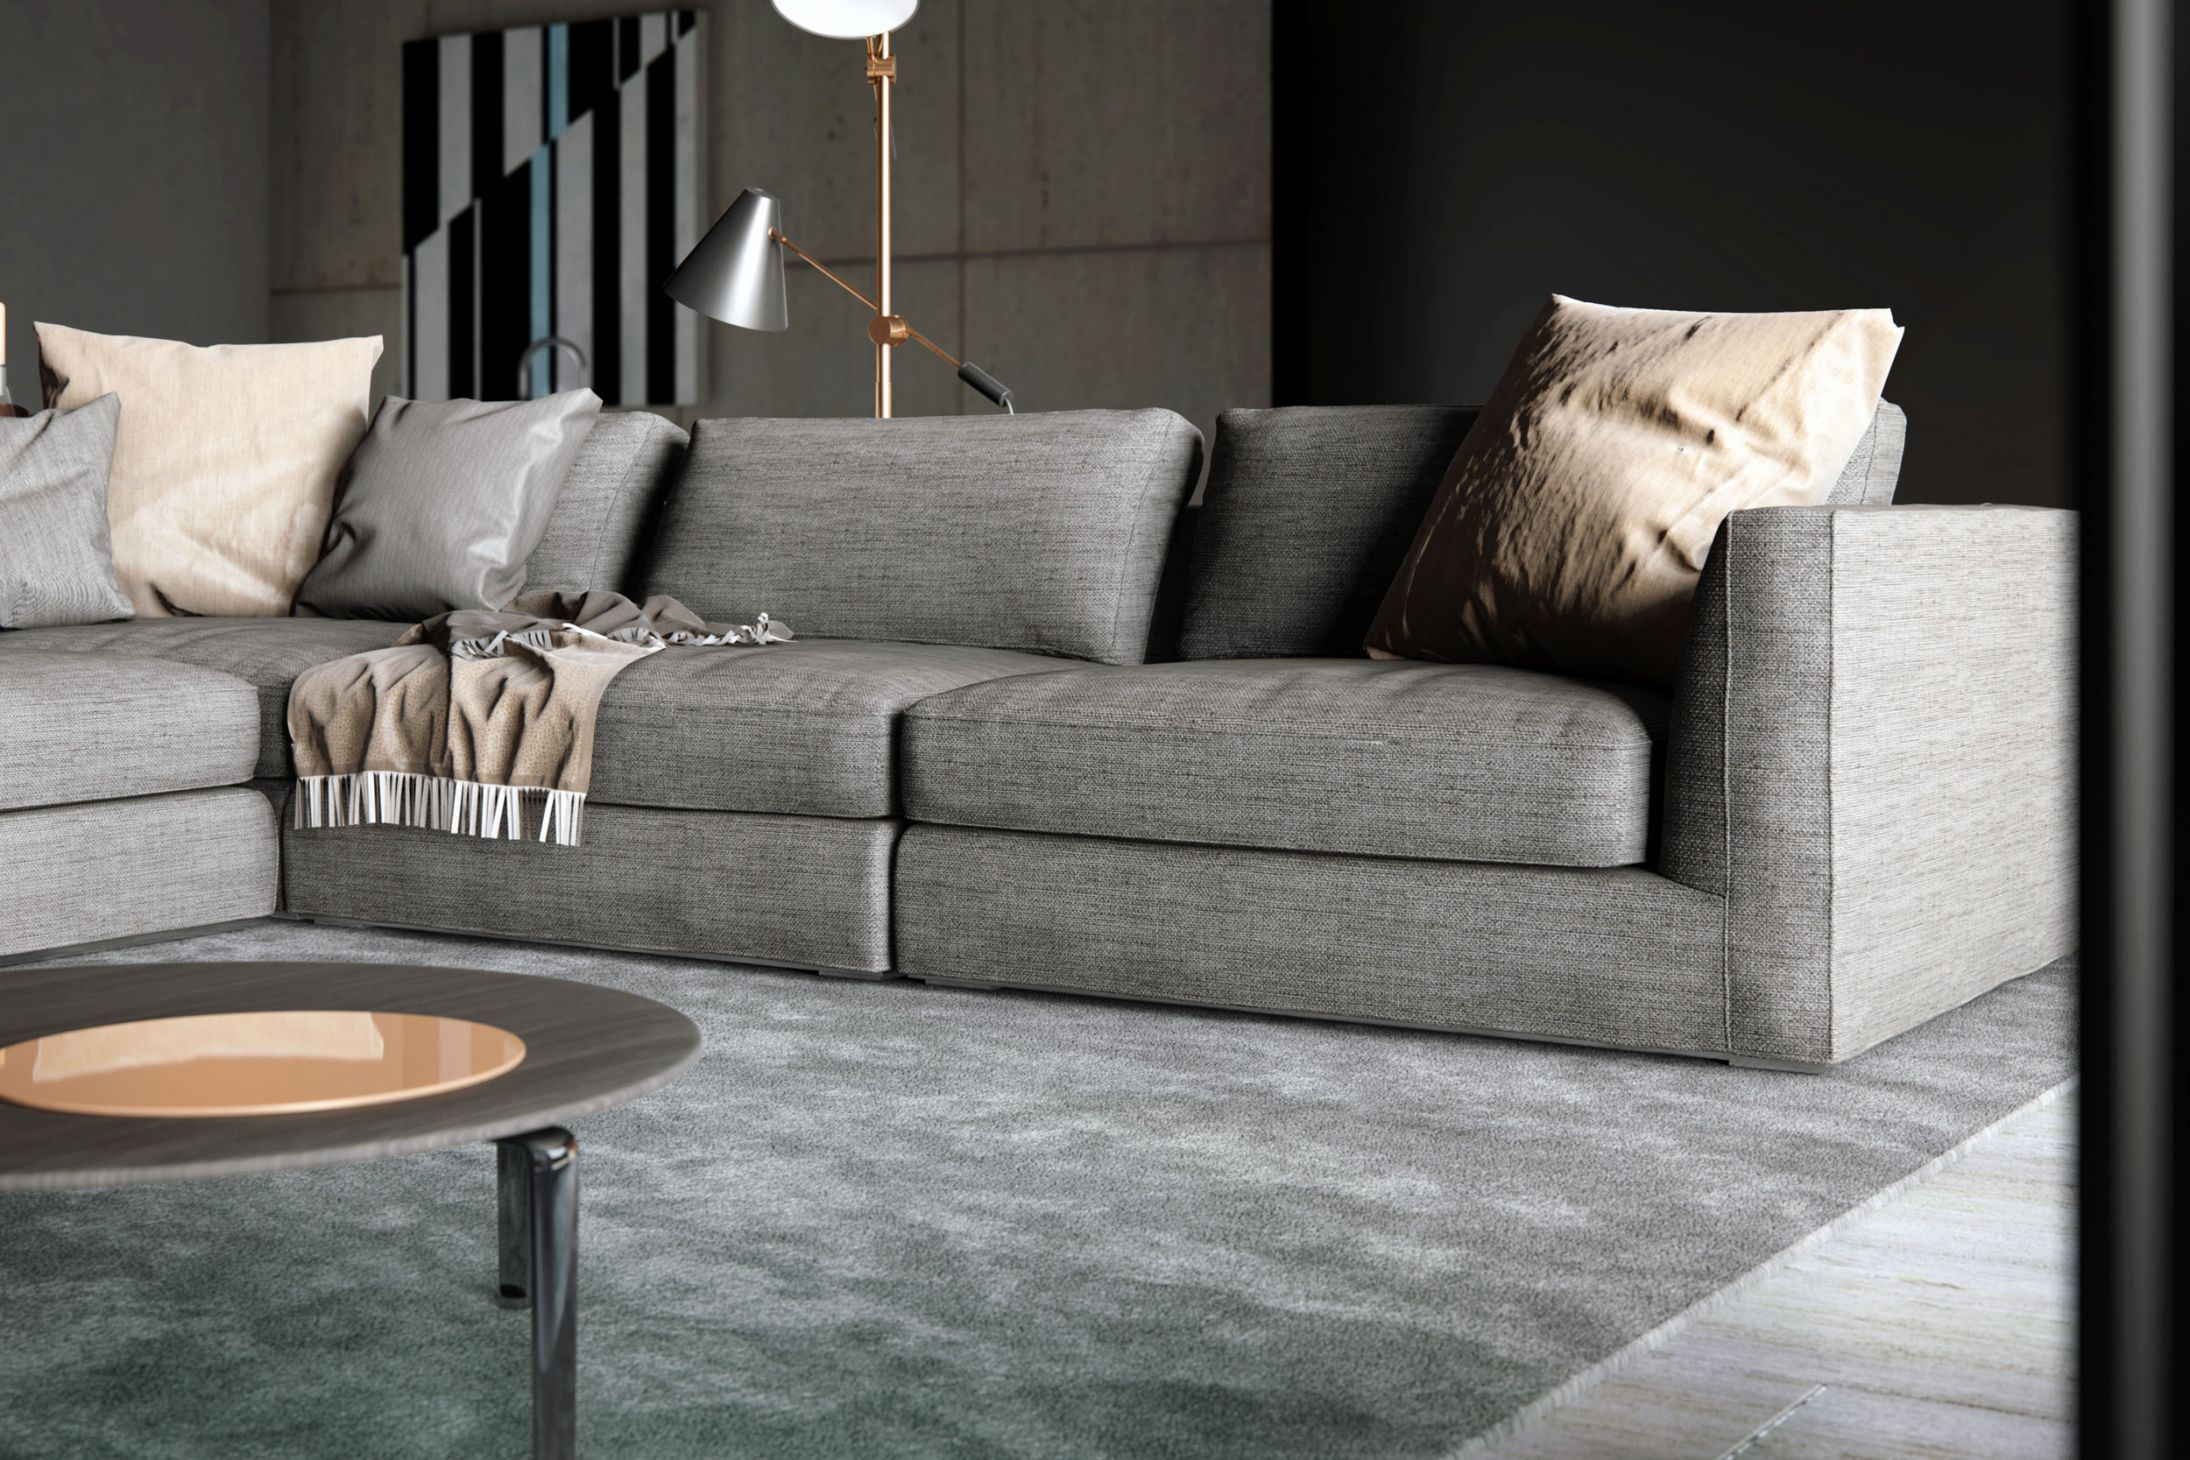 Milo Corner Sofa Groupon Review Covers India Dfs And Cuddle Chair In Tiverton Devon